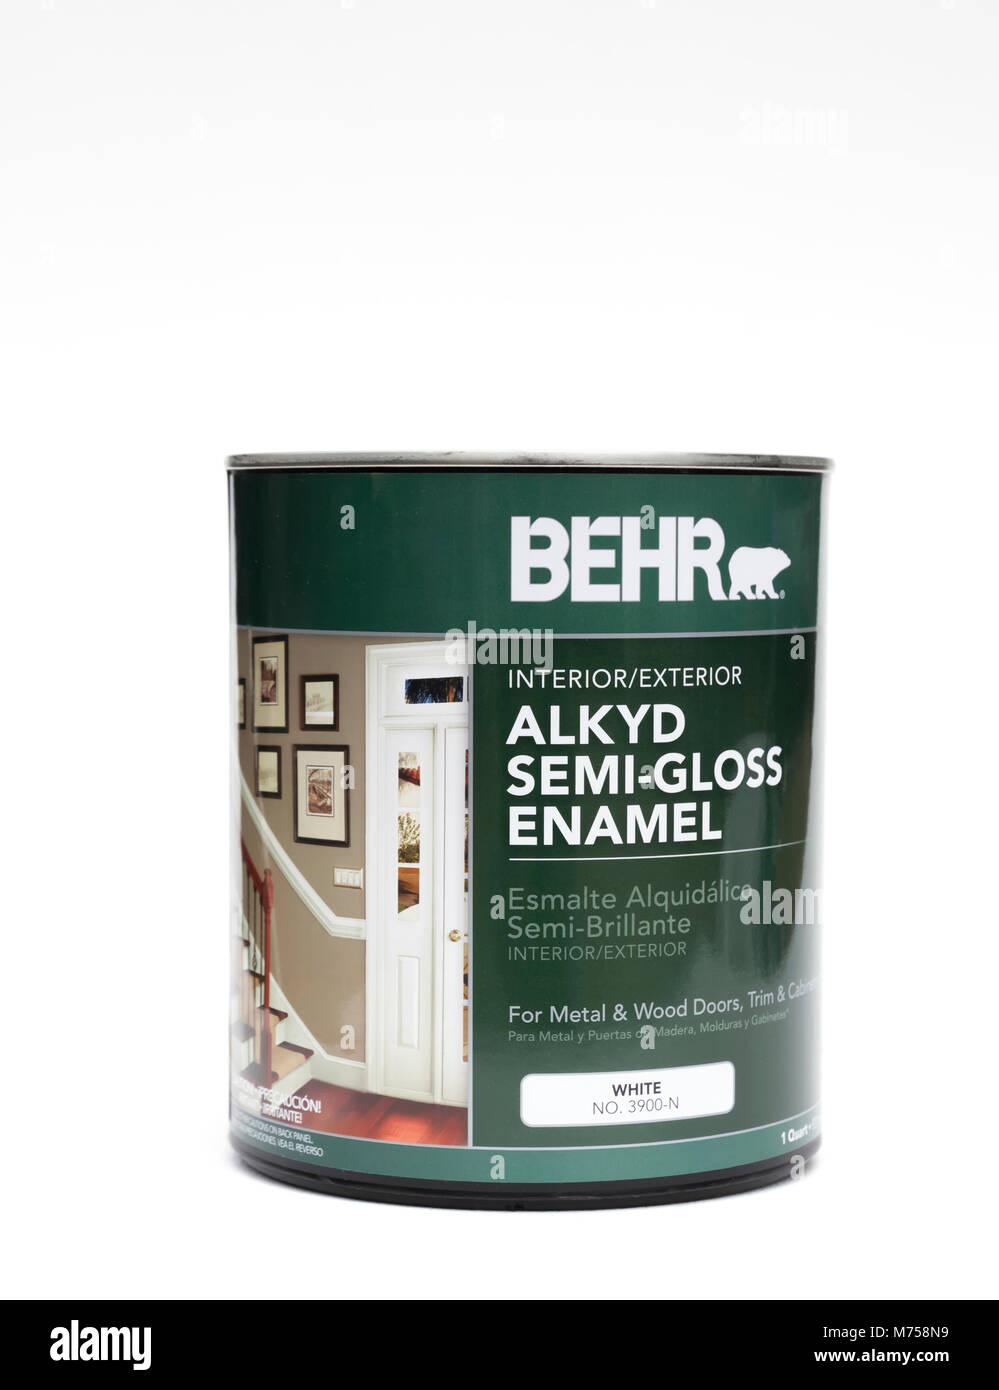 Behr Trim Paint : paint, Alkyd, Semi-Gloss, Enamel, Paint, Doors,, Trim,, Molding, Stock, Photo, Alamy